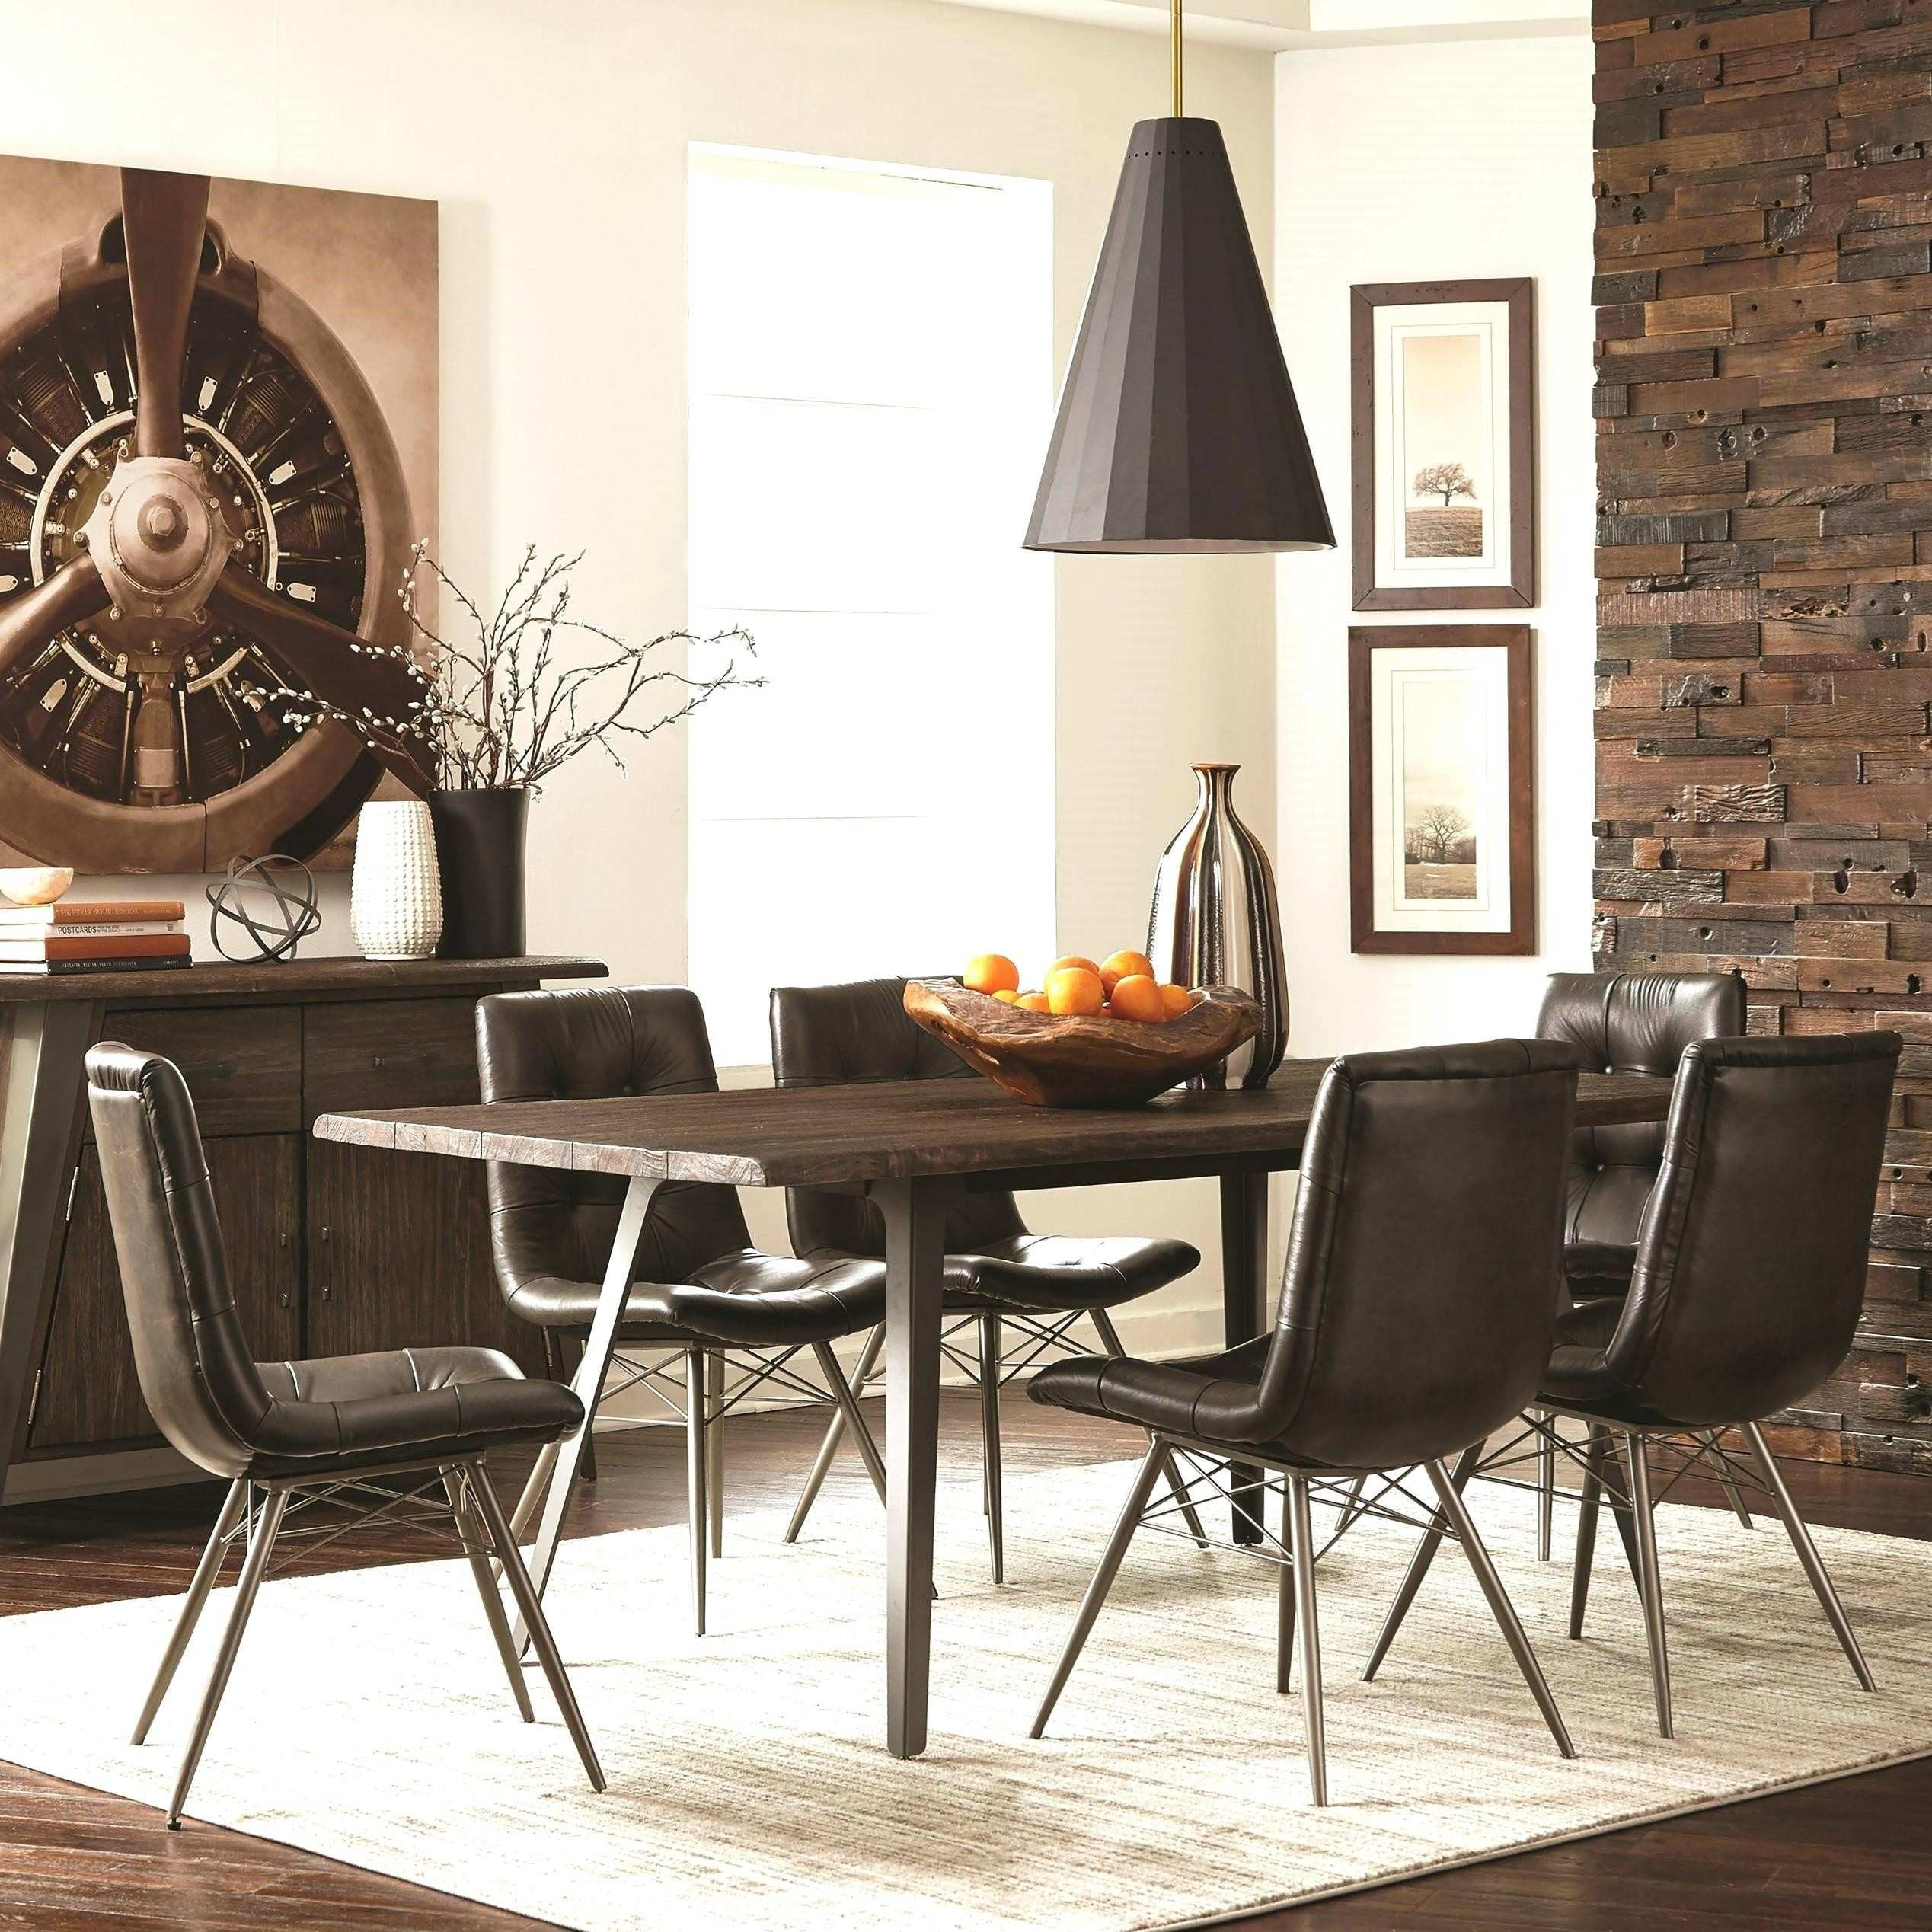 Amazing Wooden Dining Room Chairs designsolutions usa